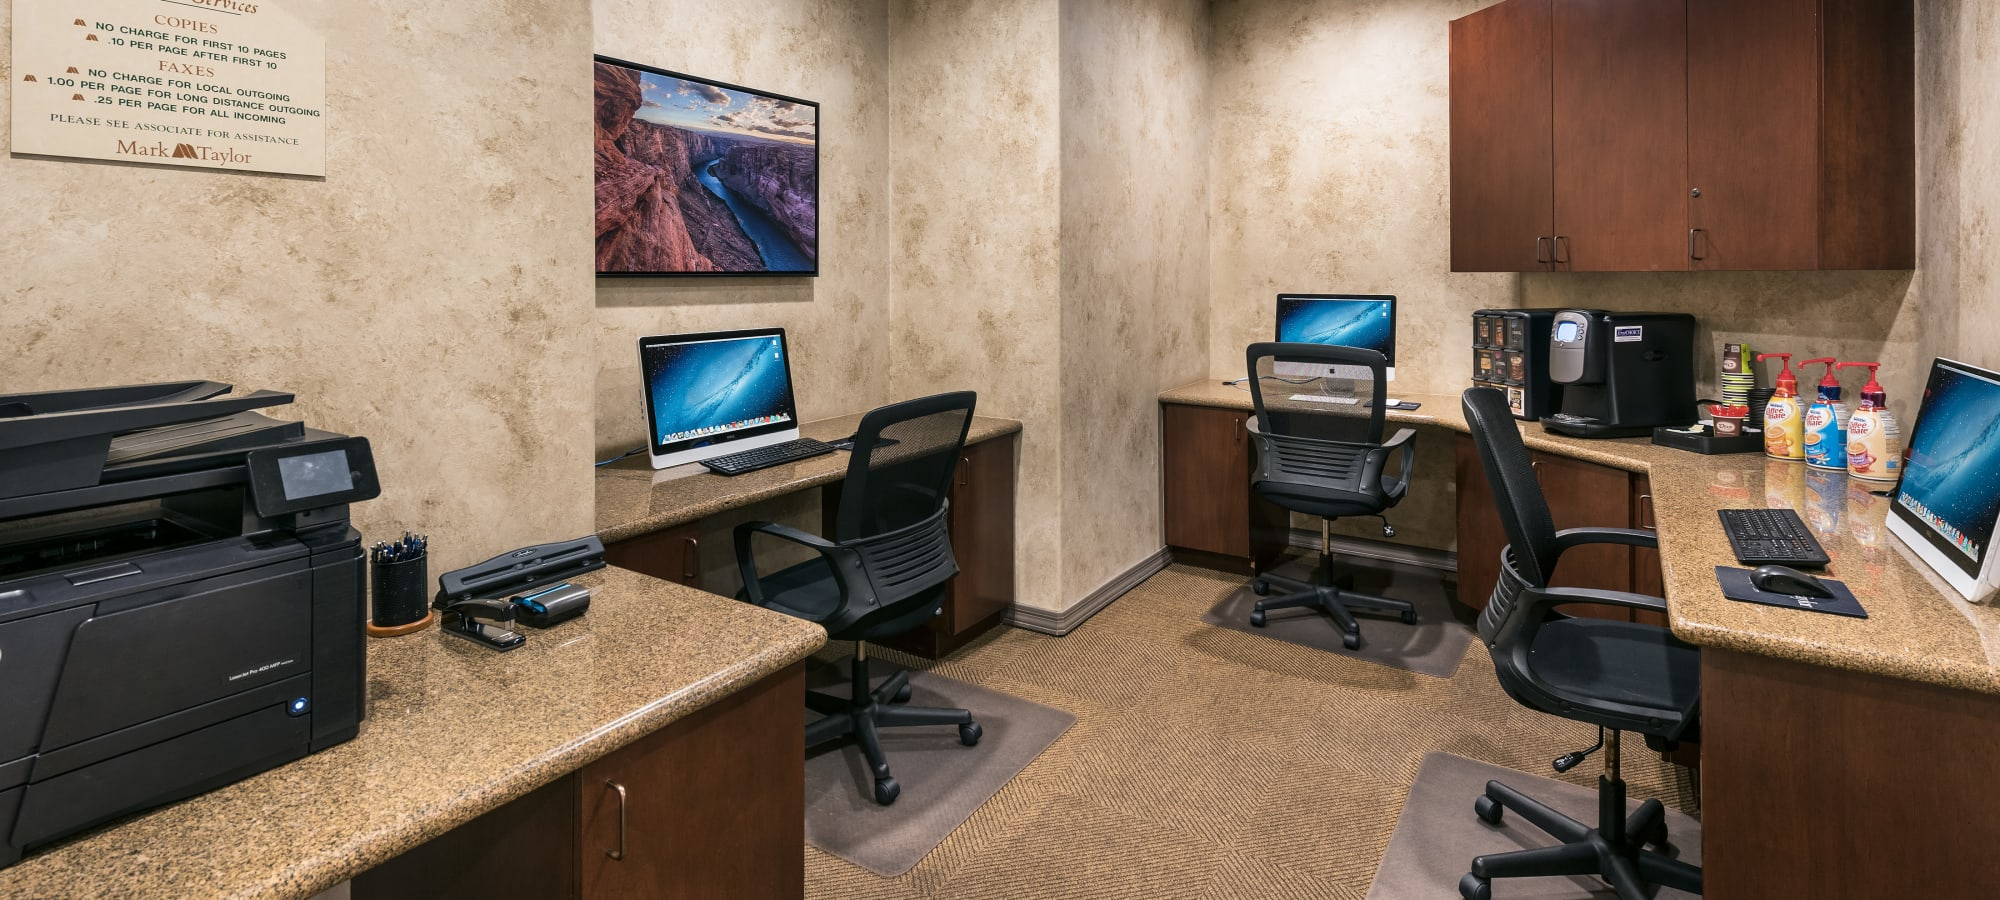 Luxury business center at San Prado in Glendale, Arizona